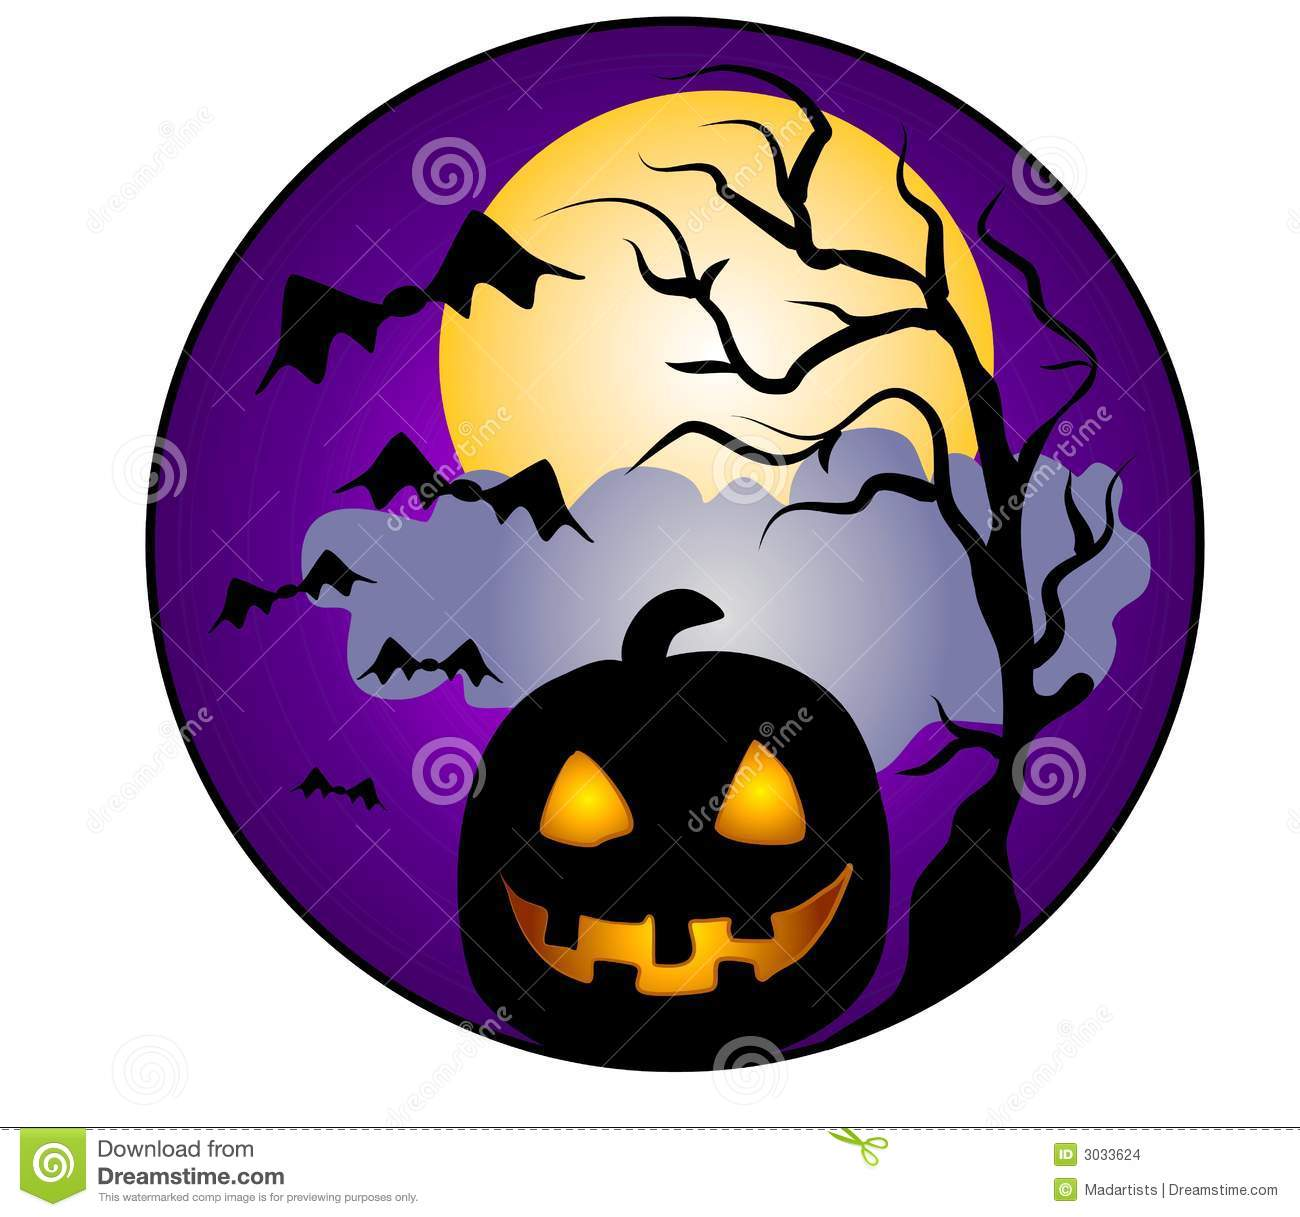 halloween image clipart - photo #4